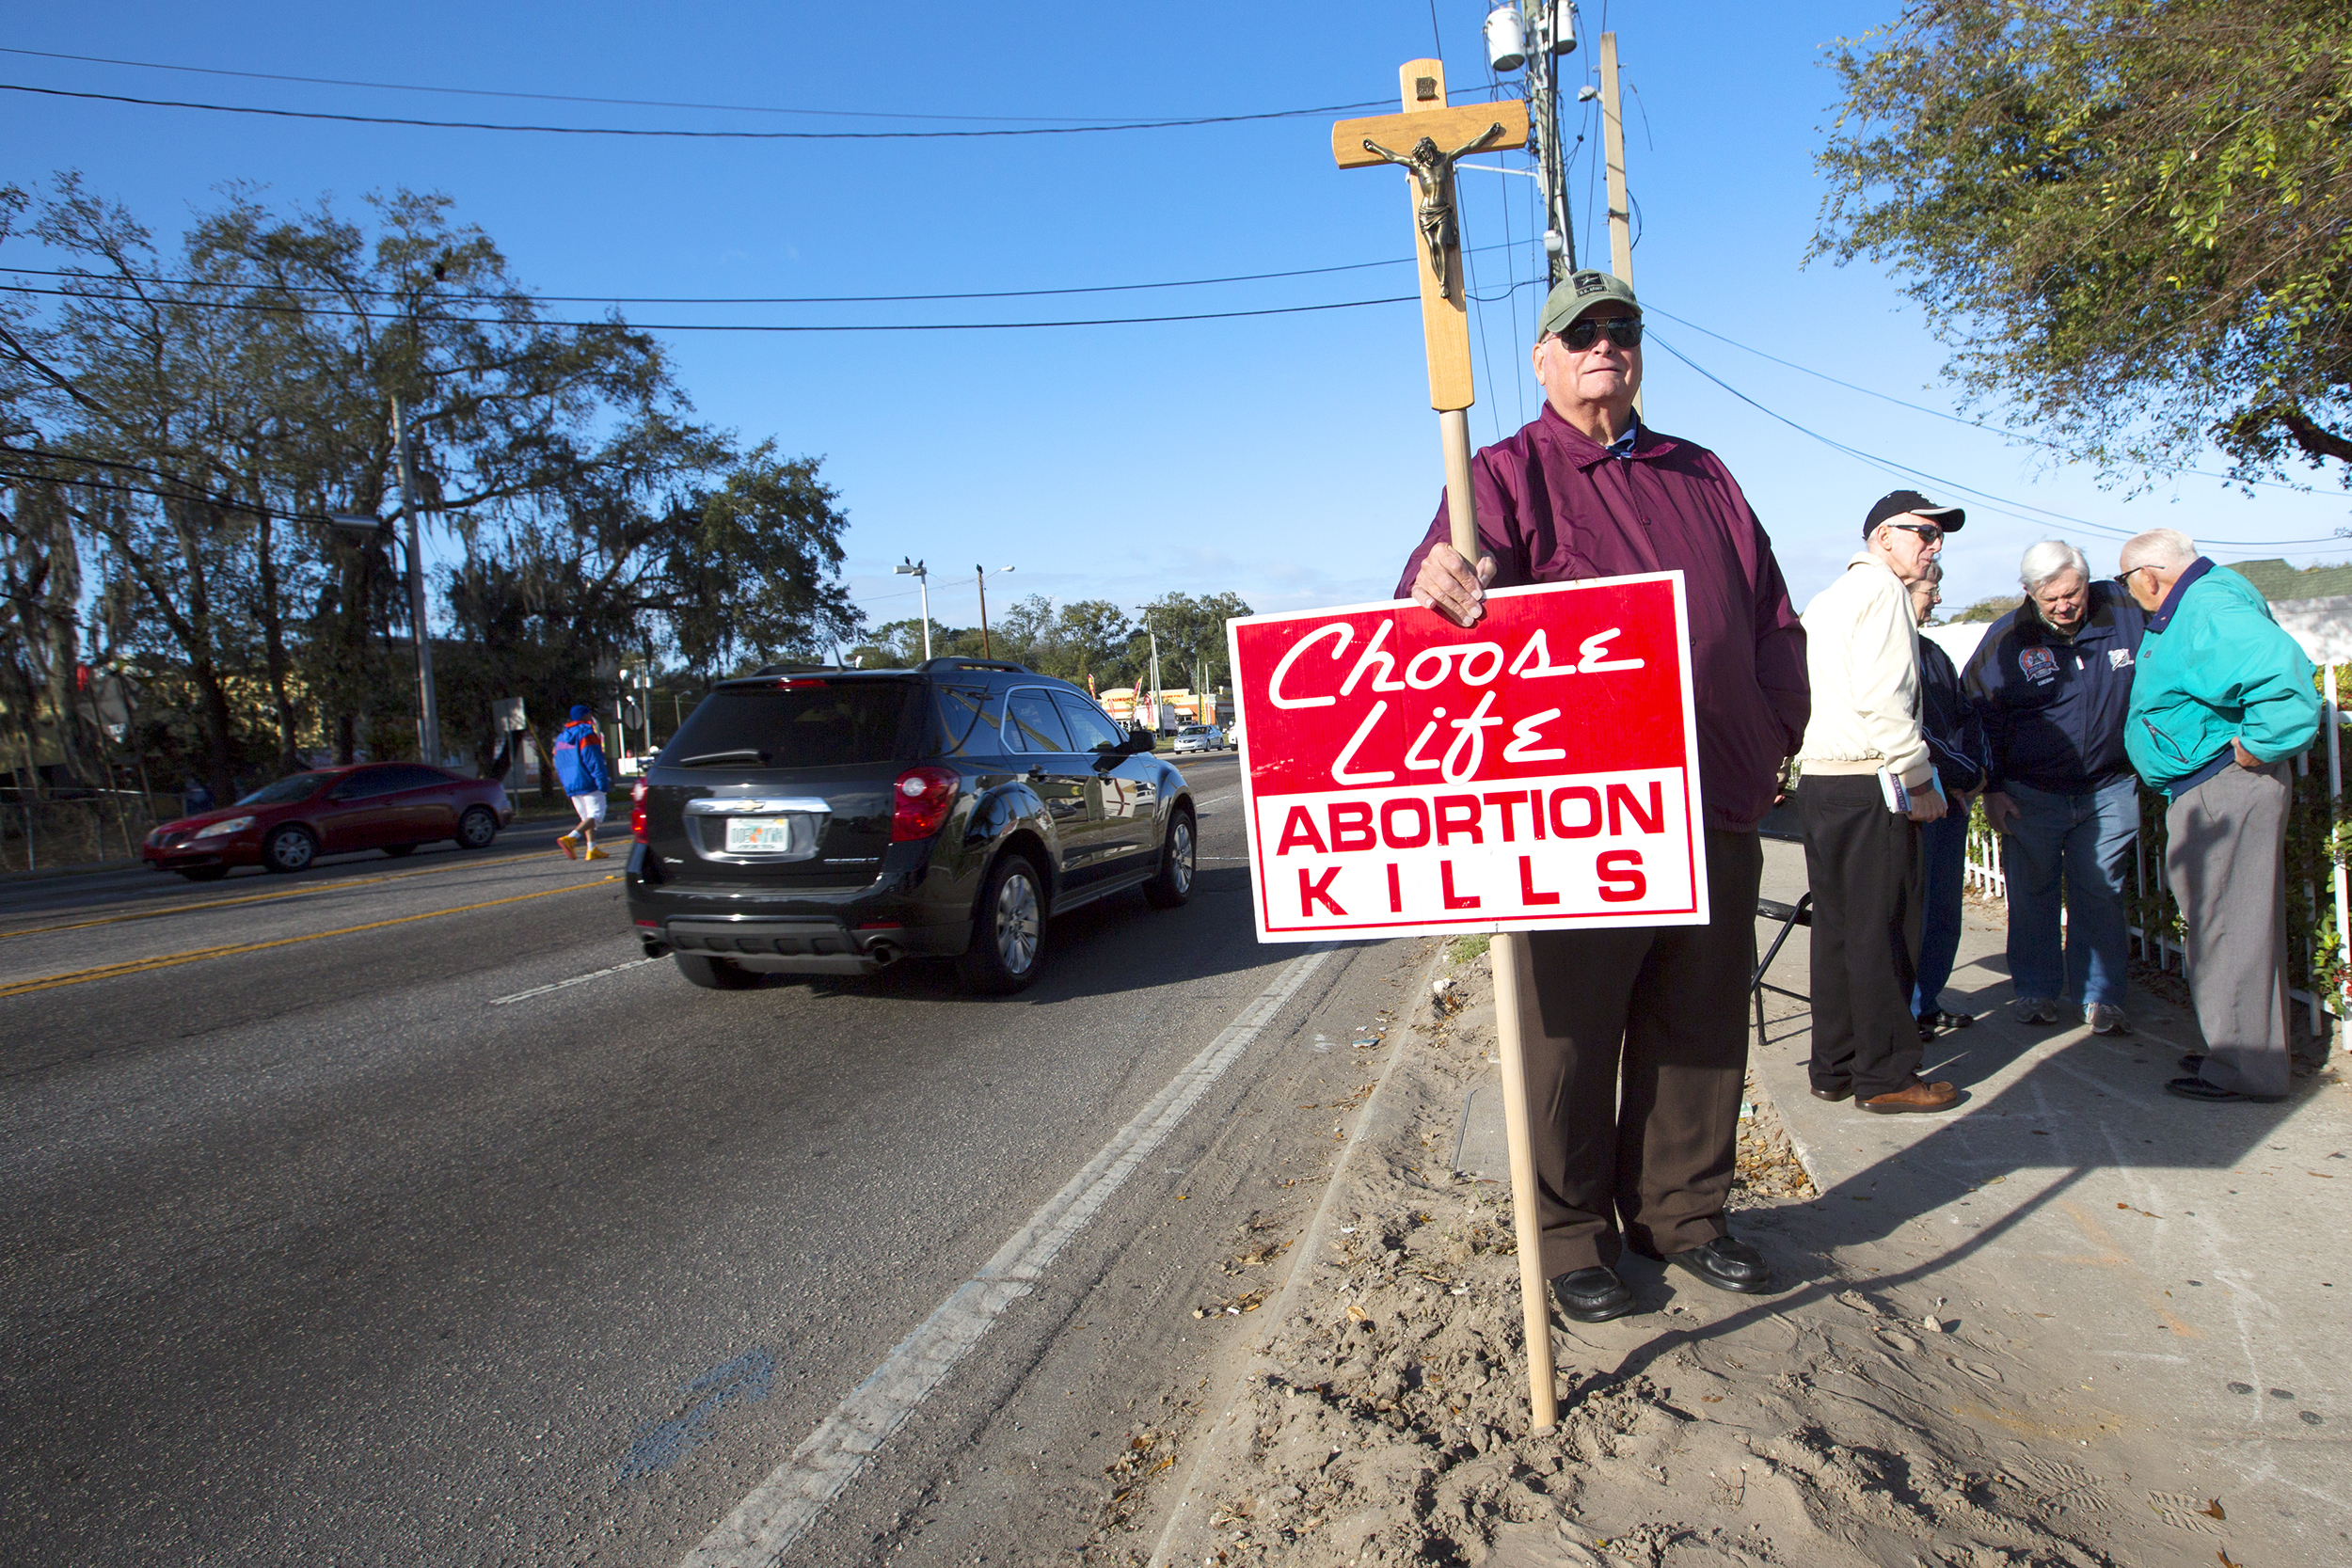 Jim Haskins holds a crucifix with a choose life sign attached on Fletcher ave with other demonstrators in the background 2.jpg